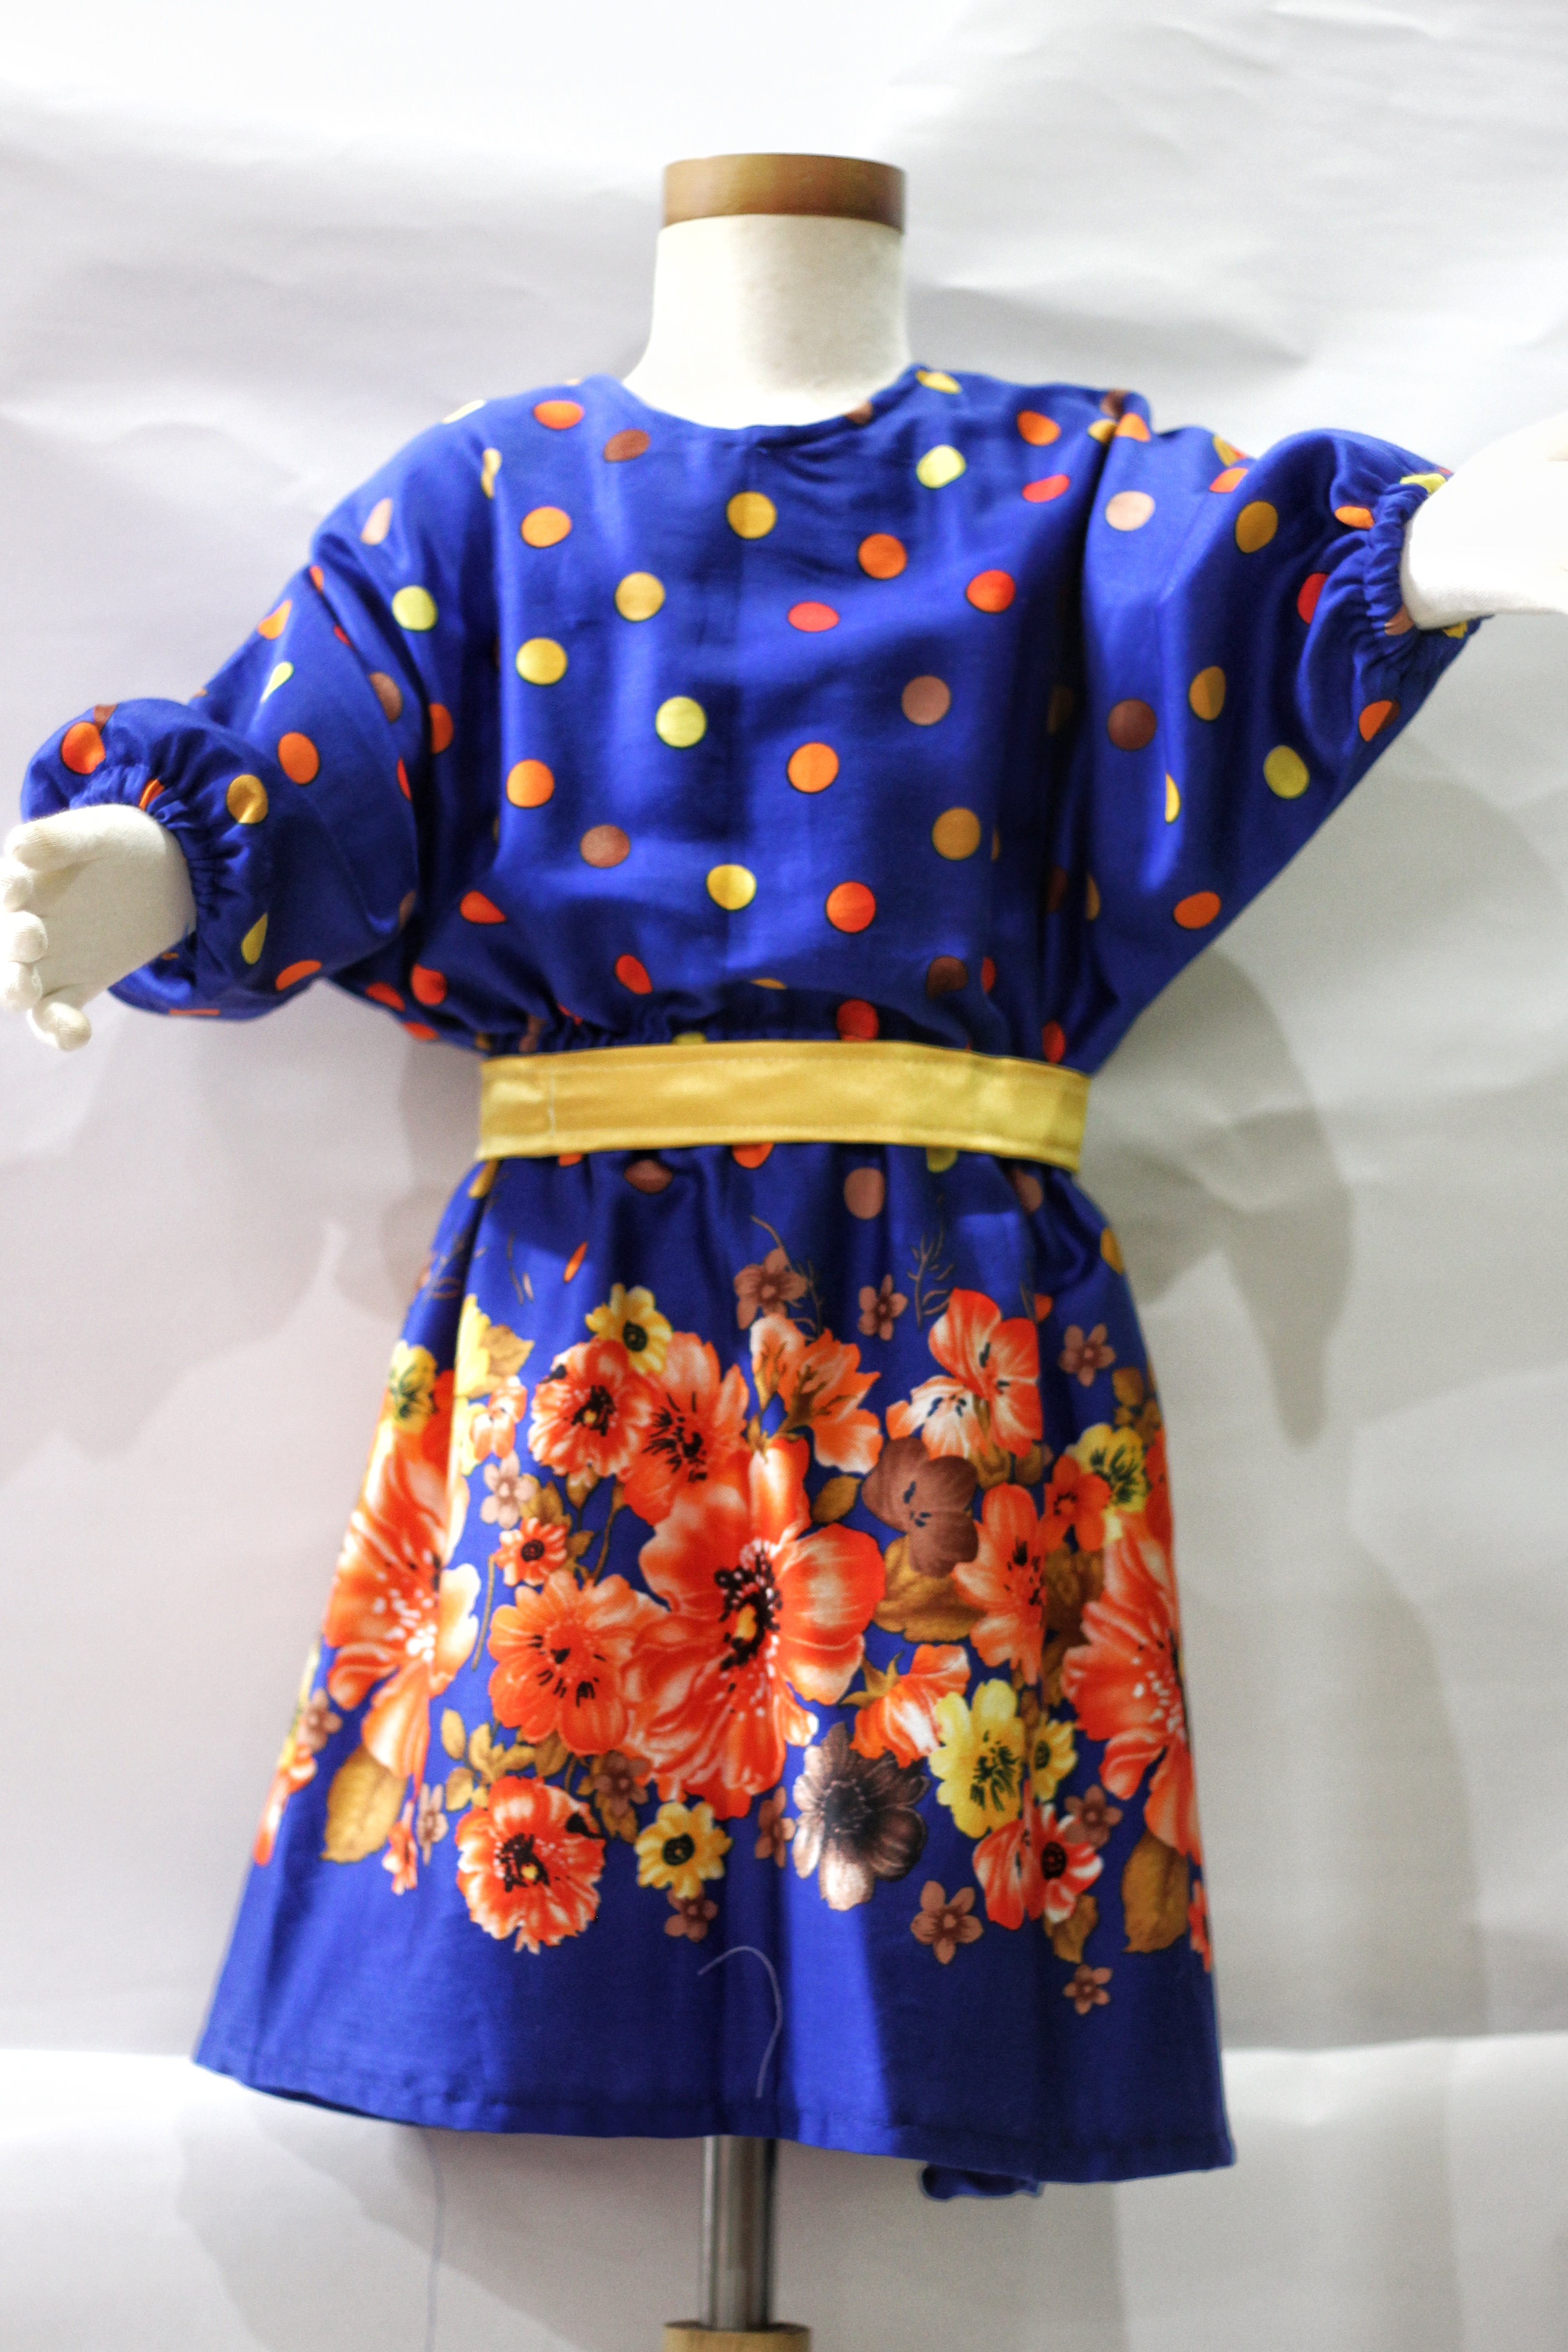 Electric Blue Colourful Polka Dot Dress